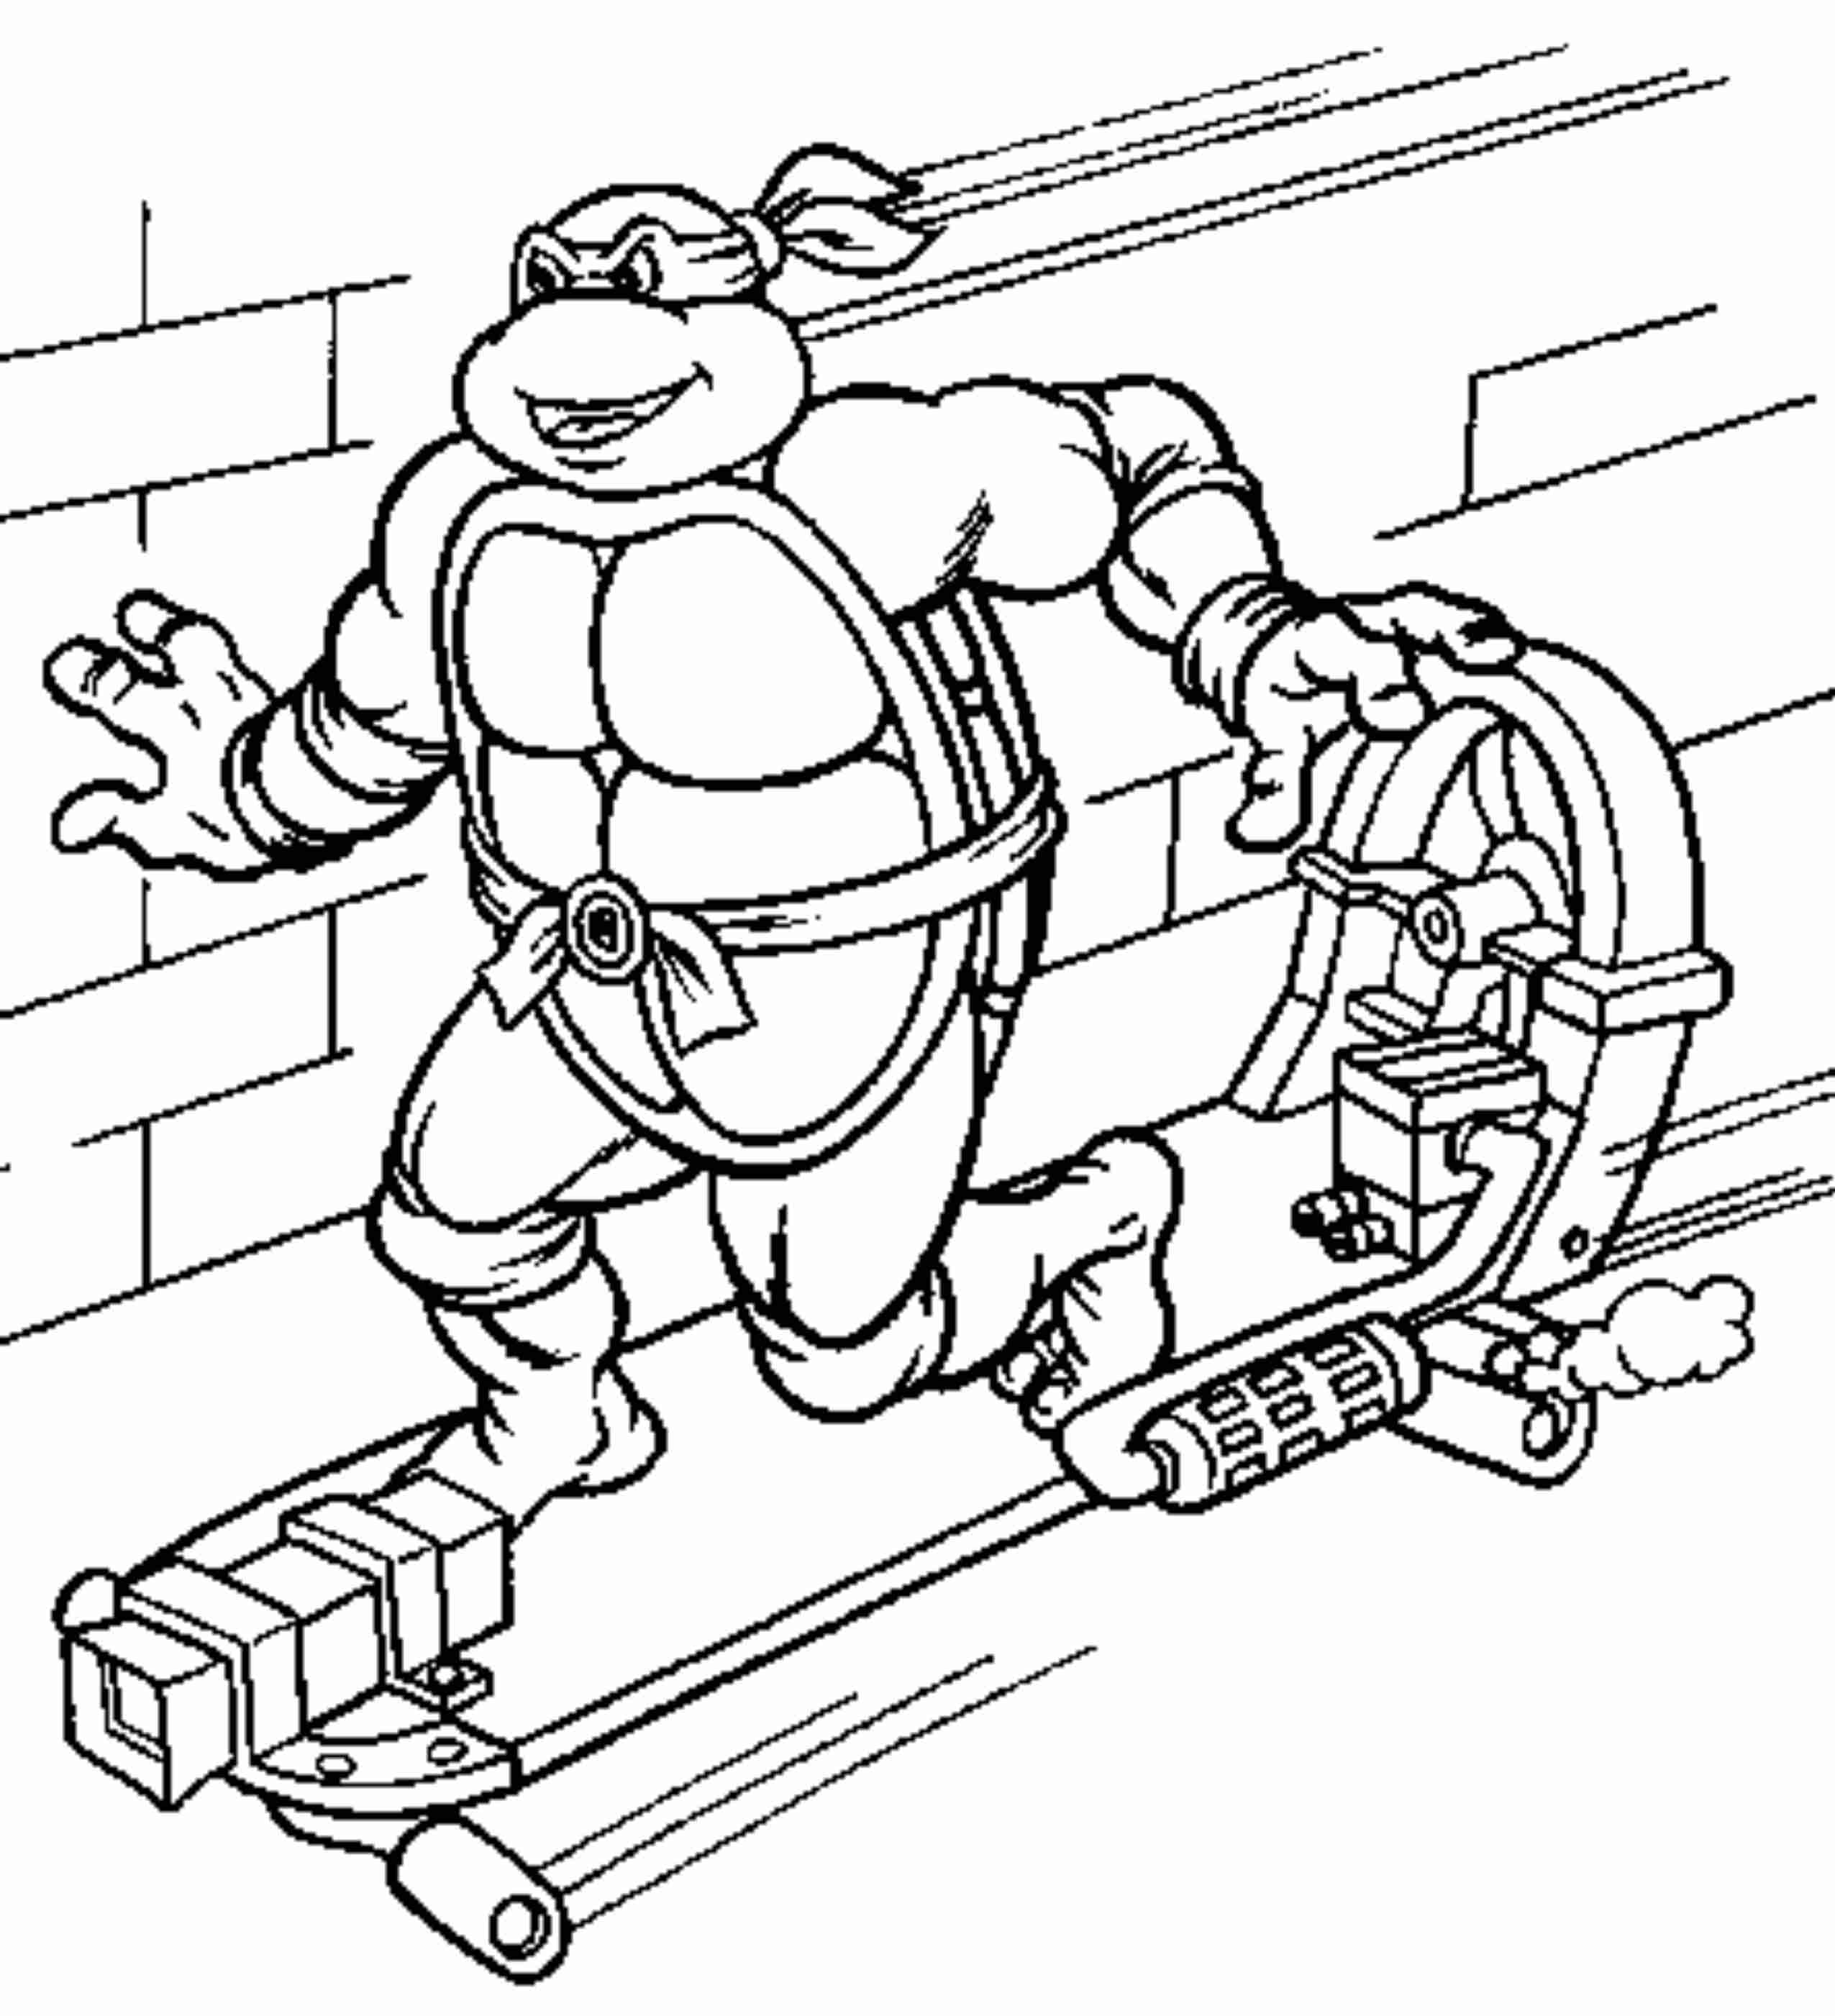 Print & Download - The Attractive Ninja Coloring Pages for ...